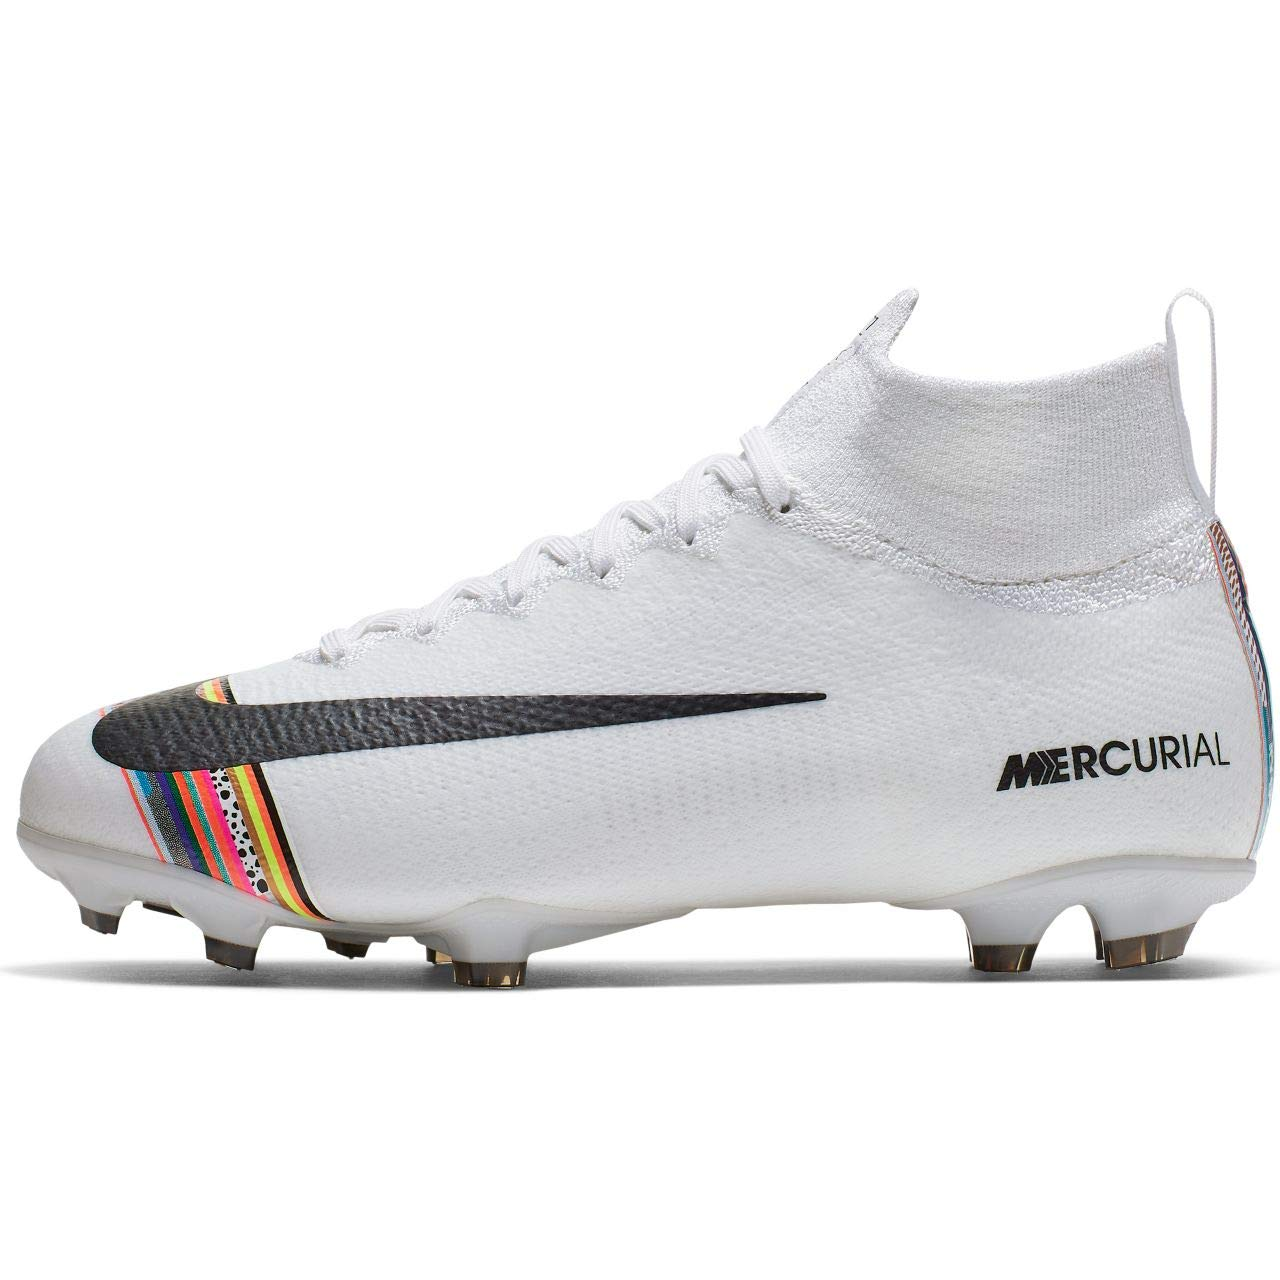 Nike Youth Mercurial Superfly 6 CR7 FG Soccer Cleats (4, White/Black-Pure Platinum)